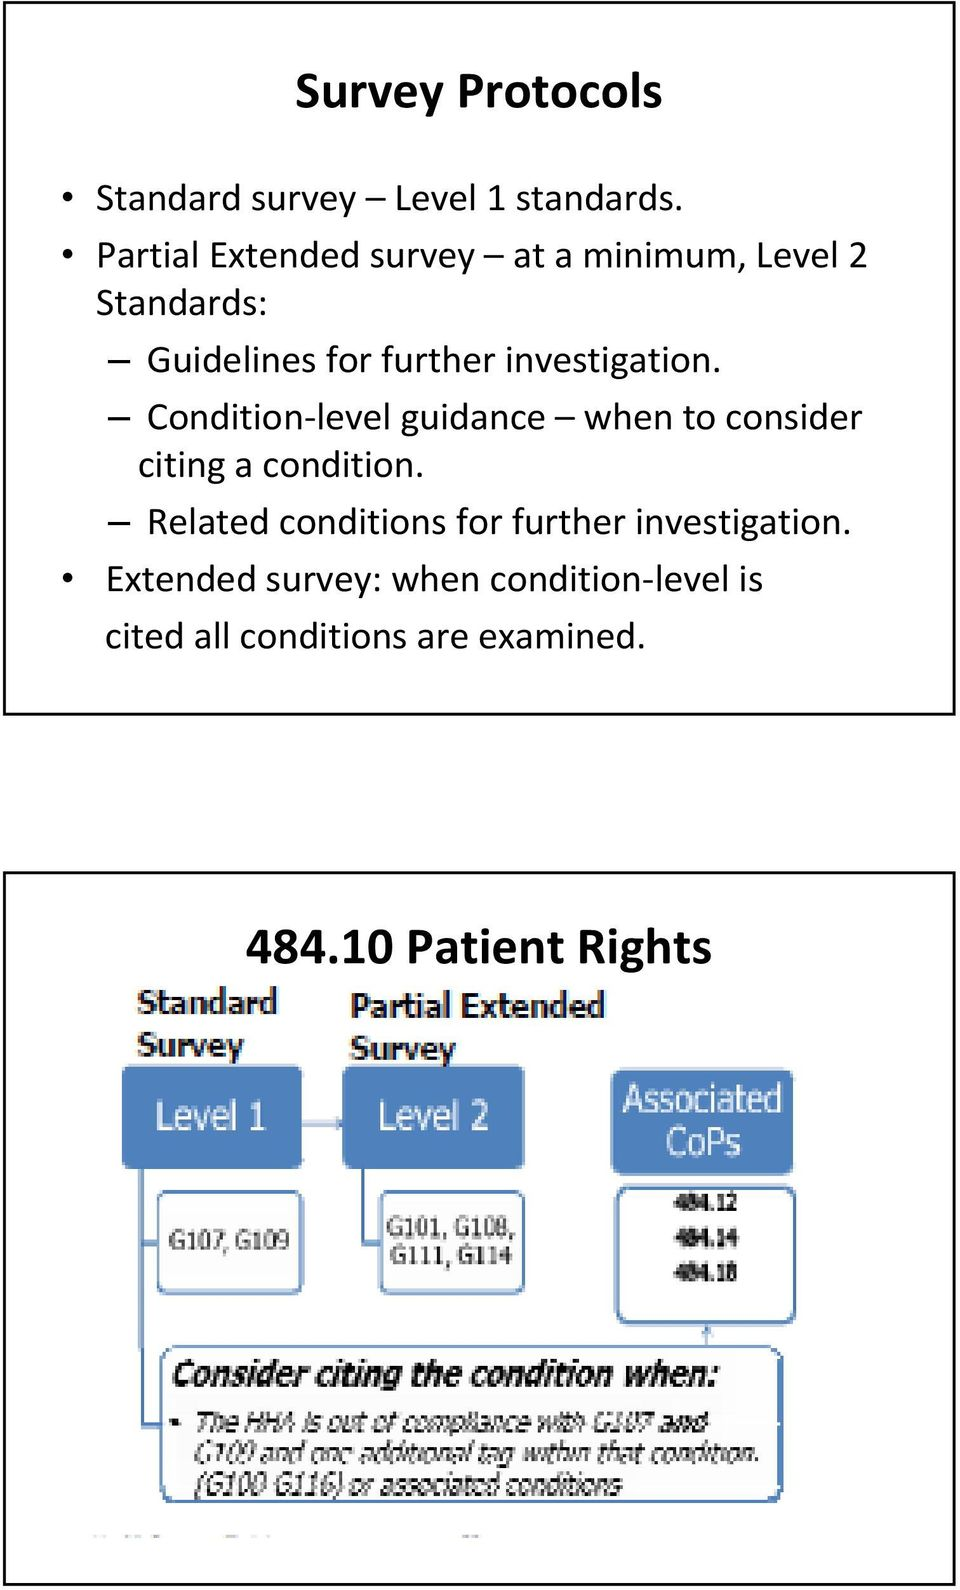 investigation. Condition level guidance when to consider citing a condition.